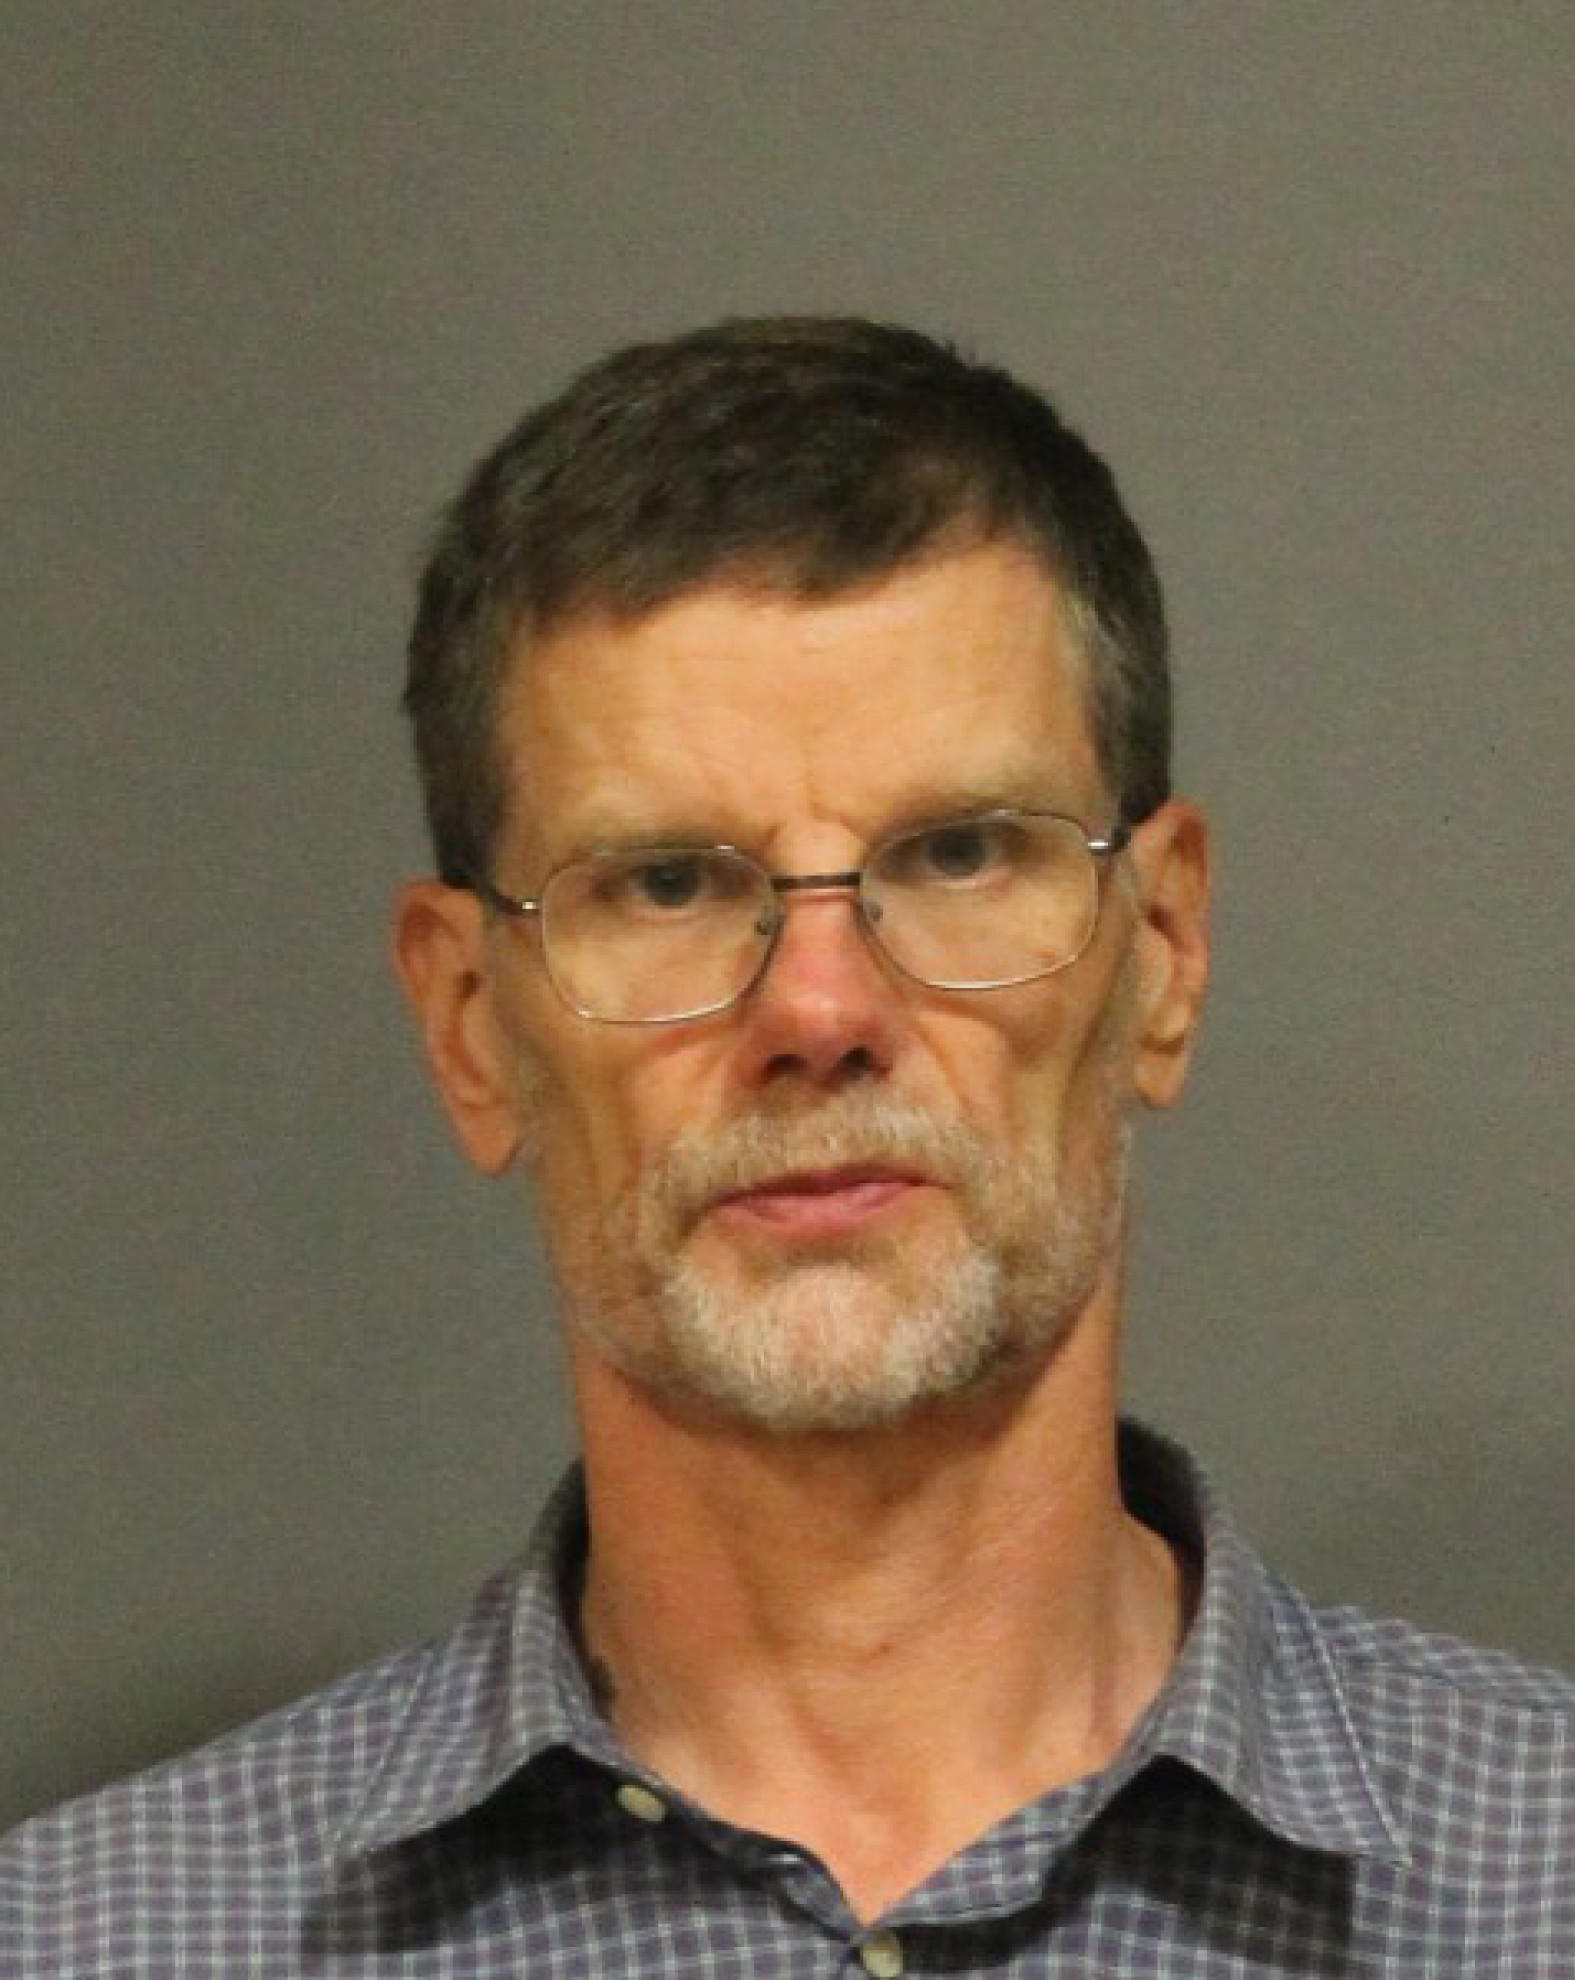 Gregory Schumm, 61, of Hartford, was charged with exposing himself to people on Farmington Avenue in West Hartford.